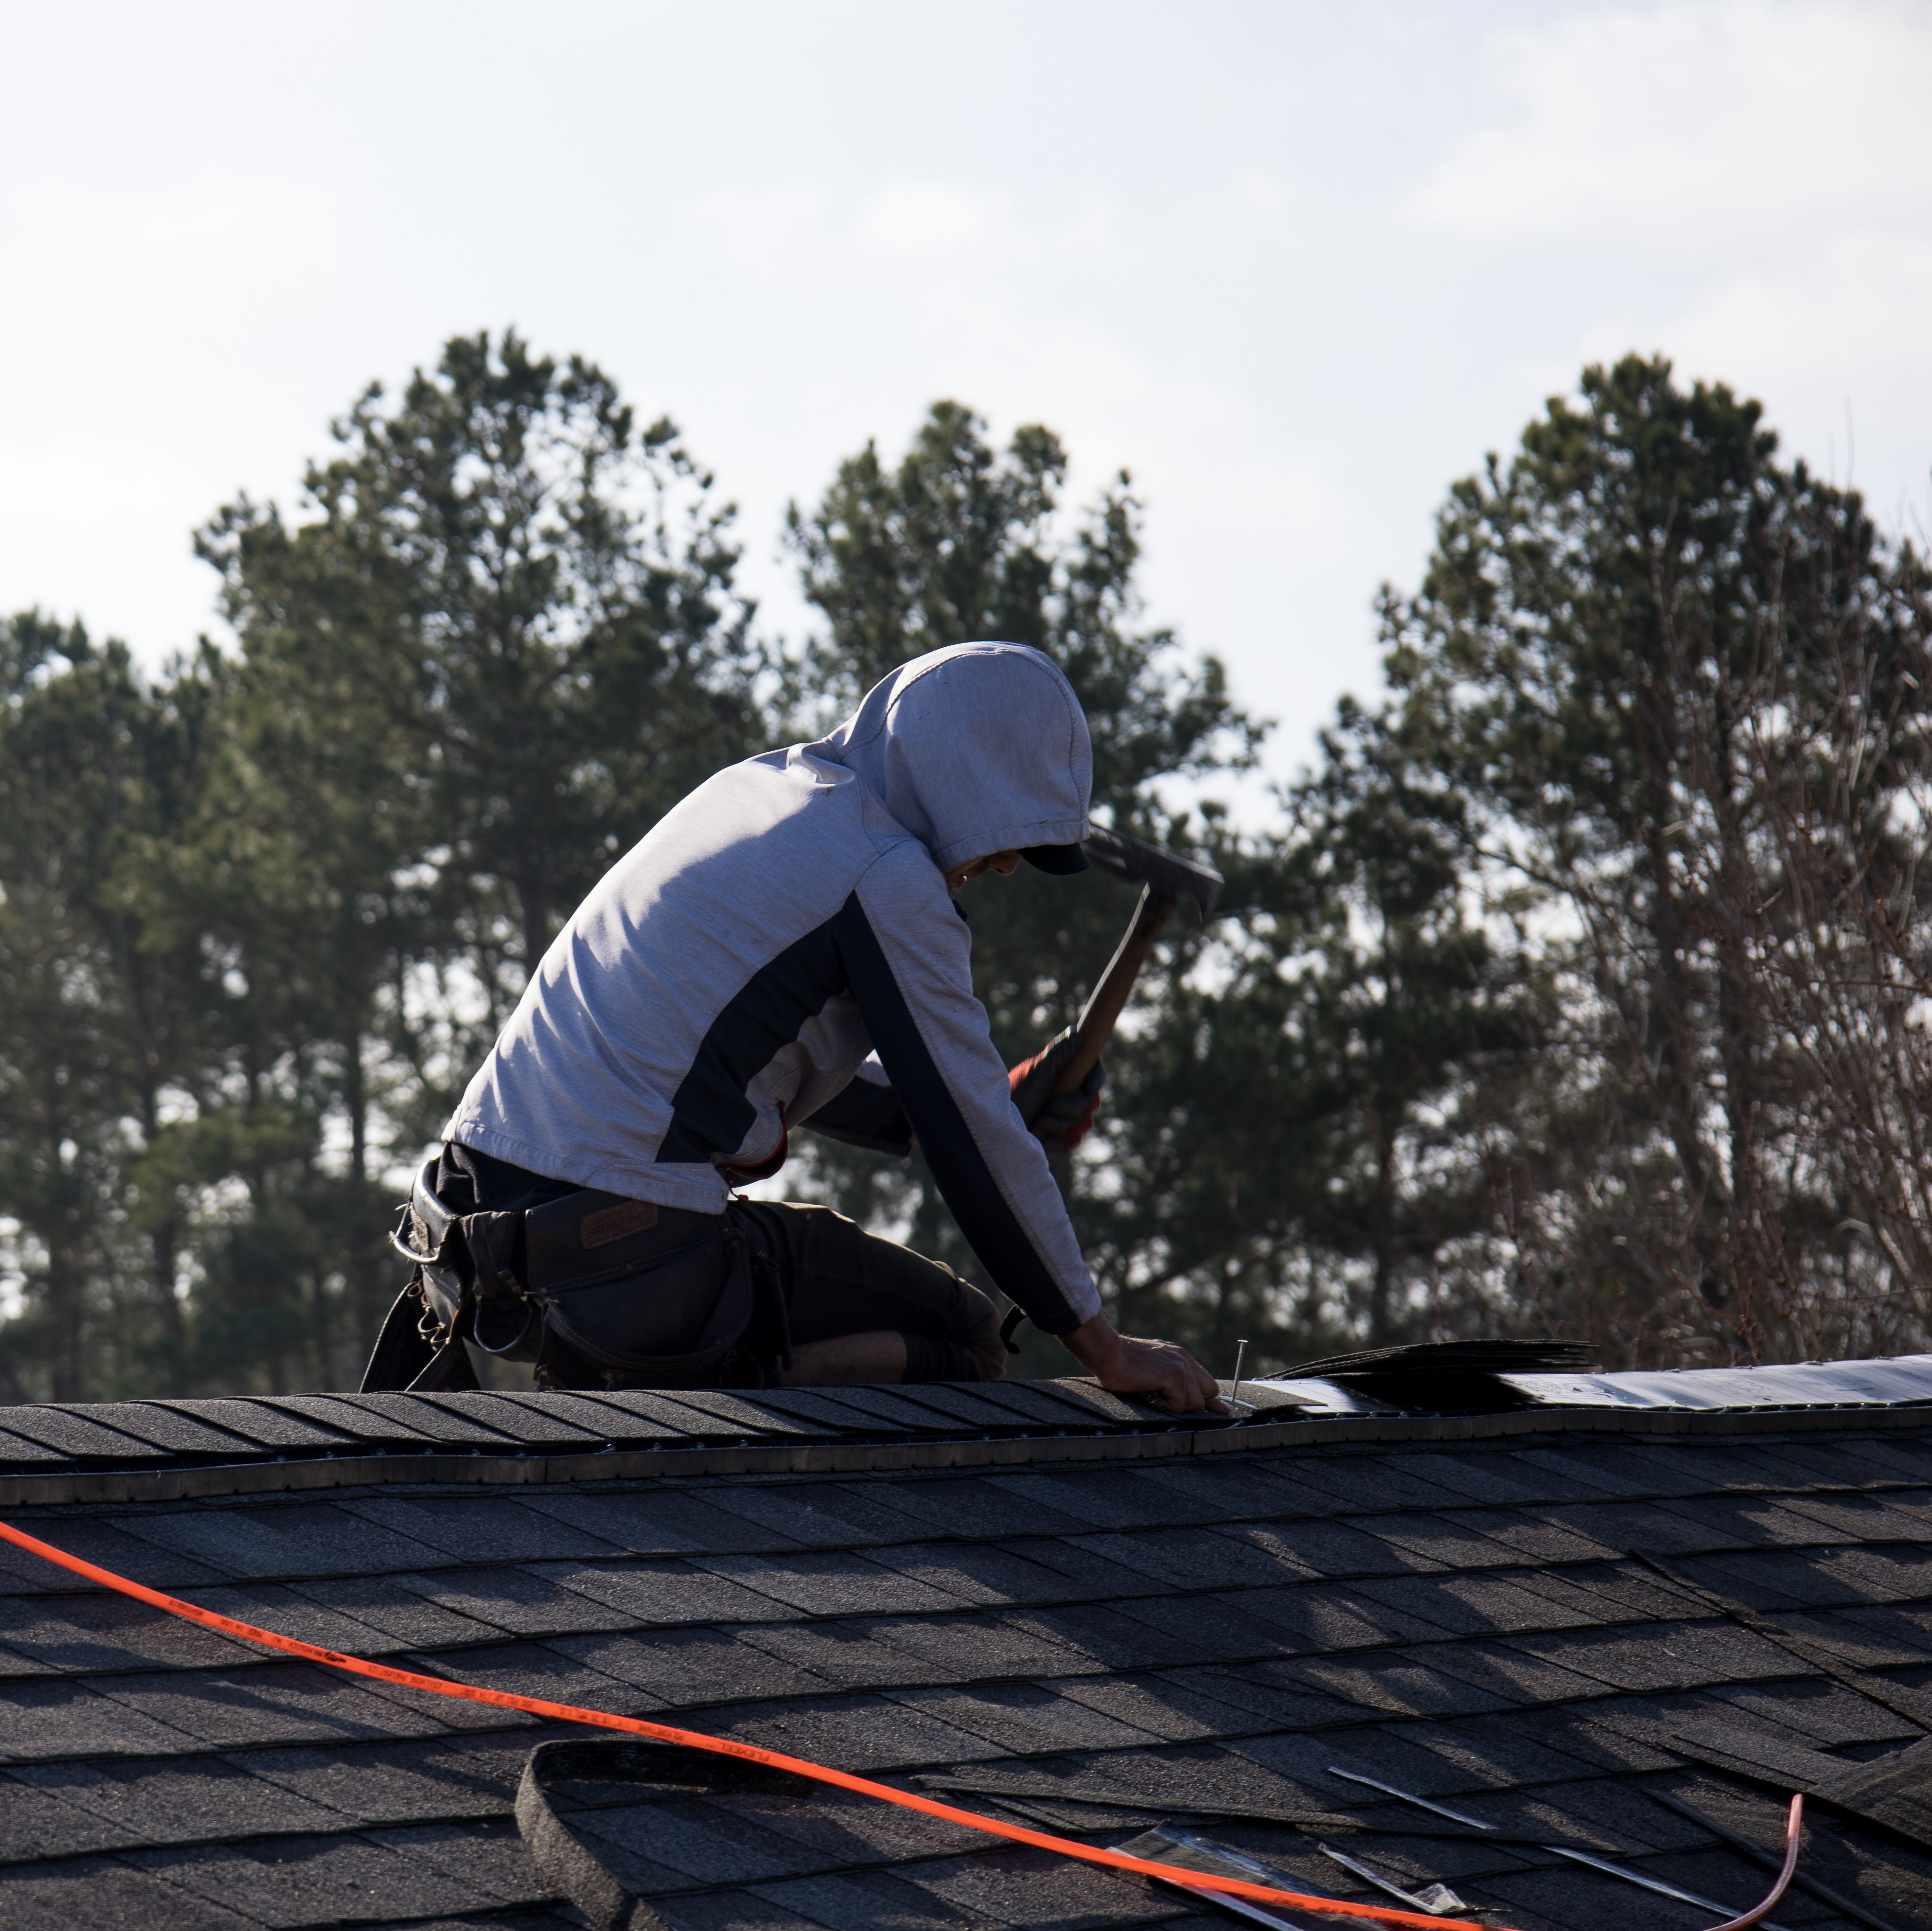 A roofer nailing shingles by hand on a roof.